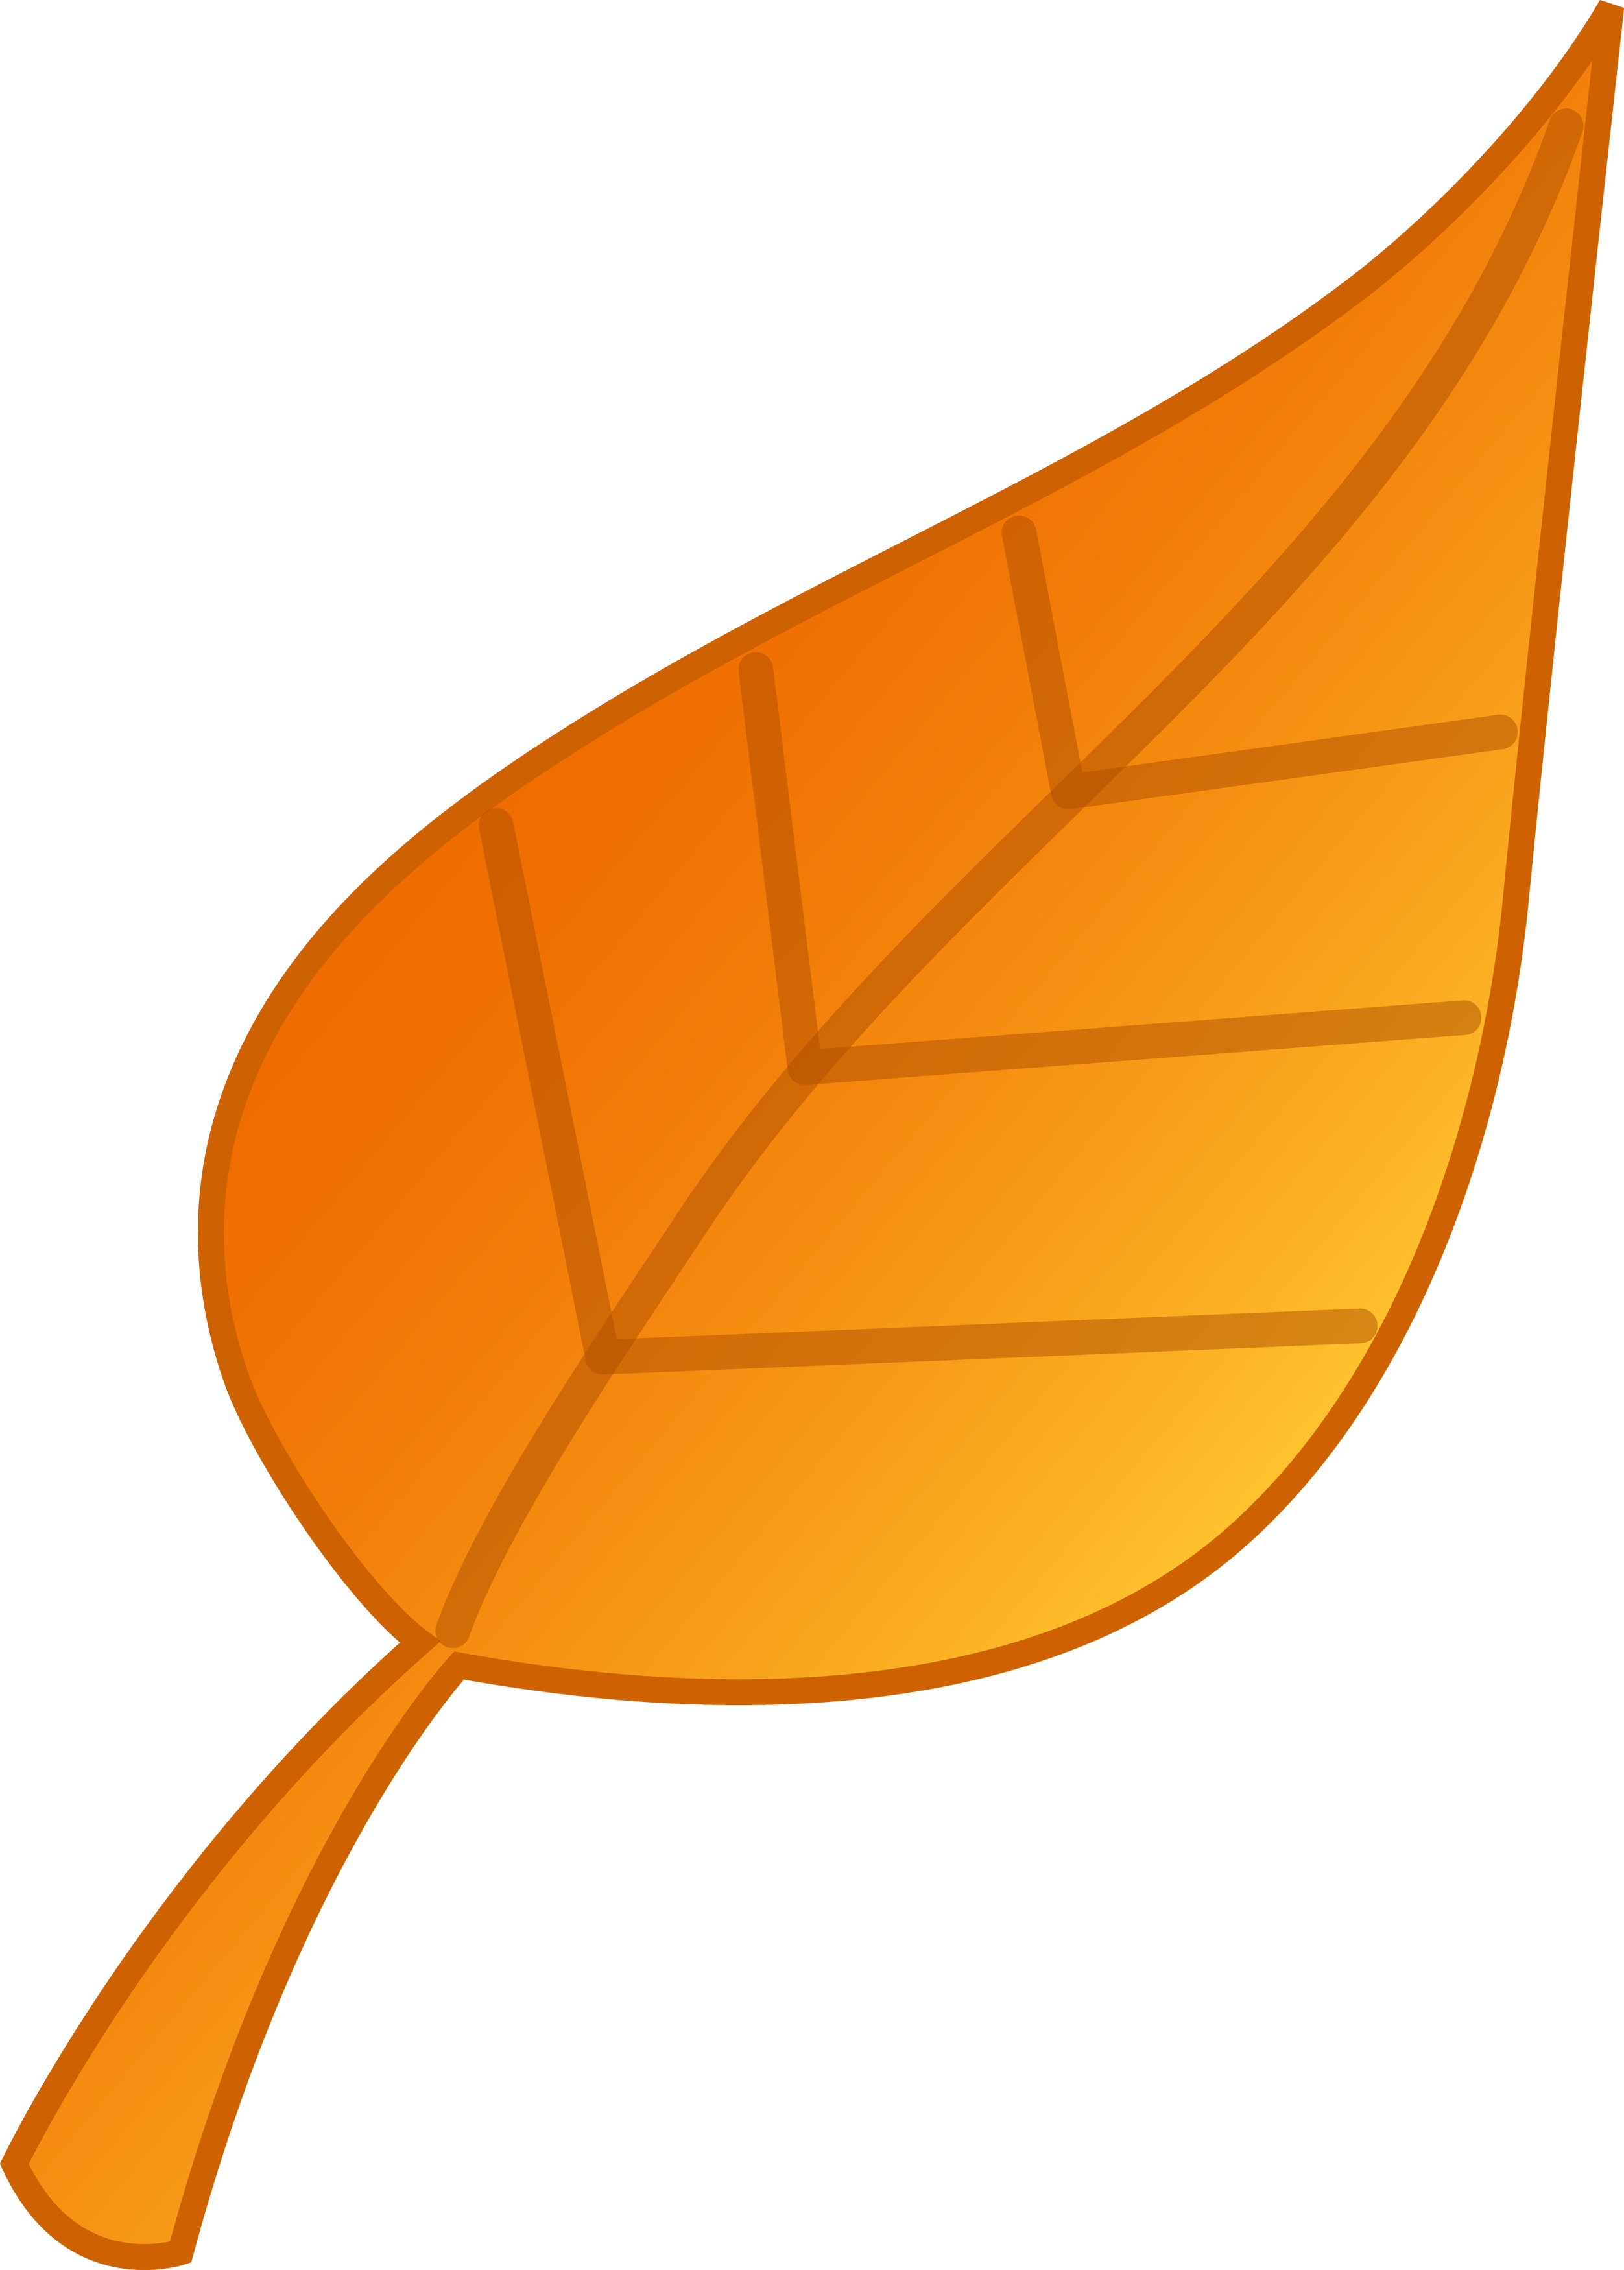 2504x3500 Fall Leaves Autumn Leaves Clip Art Free Clipart 2 Clipartcow 2